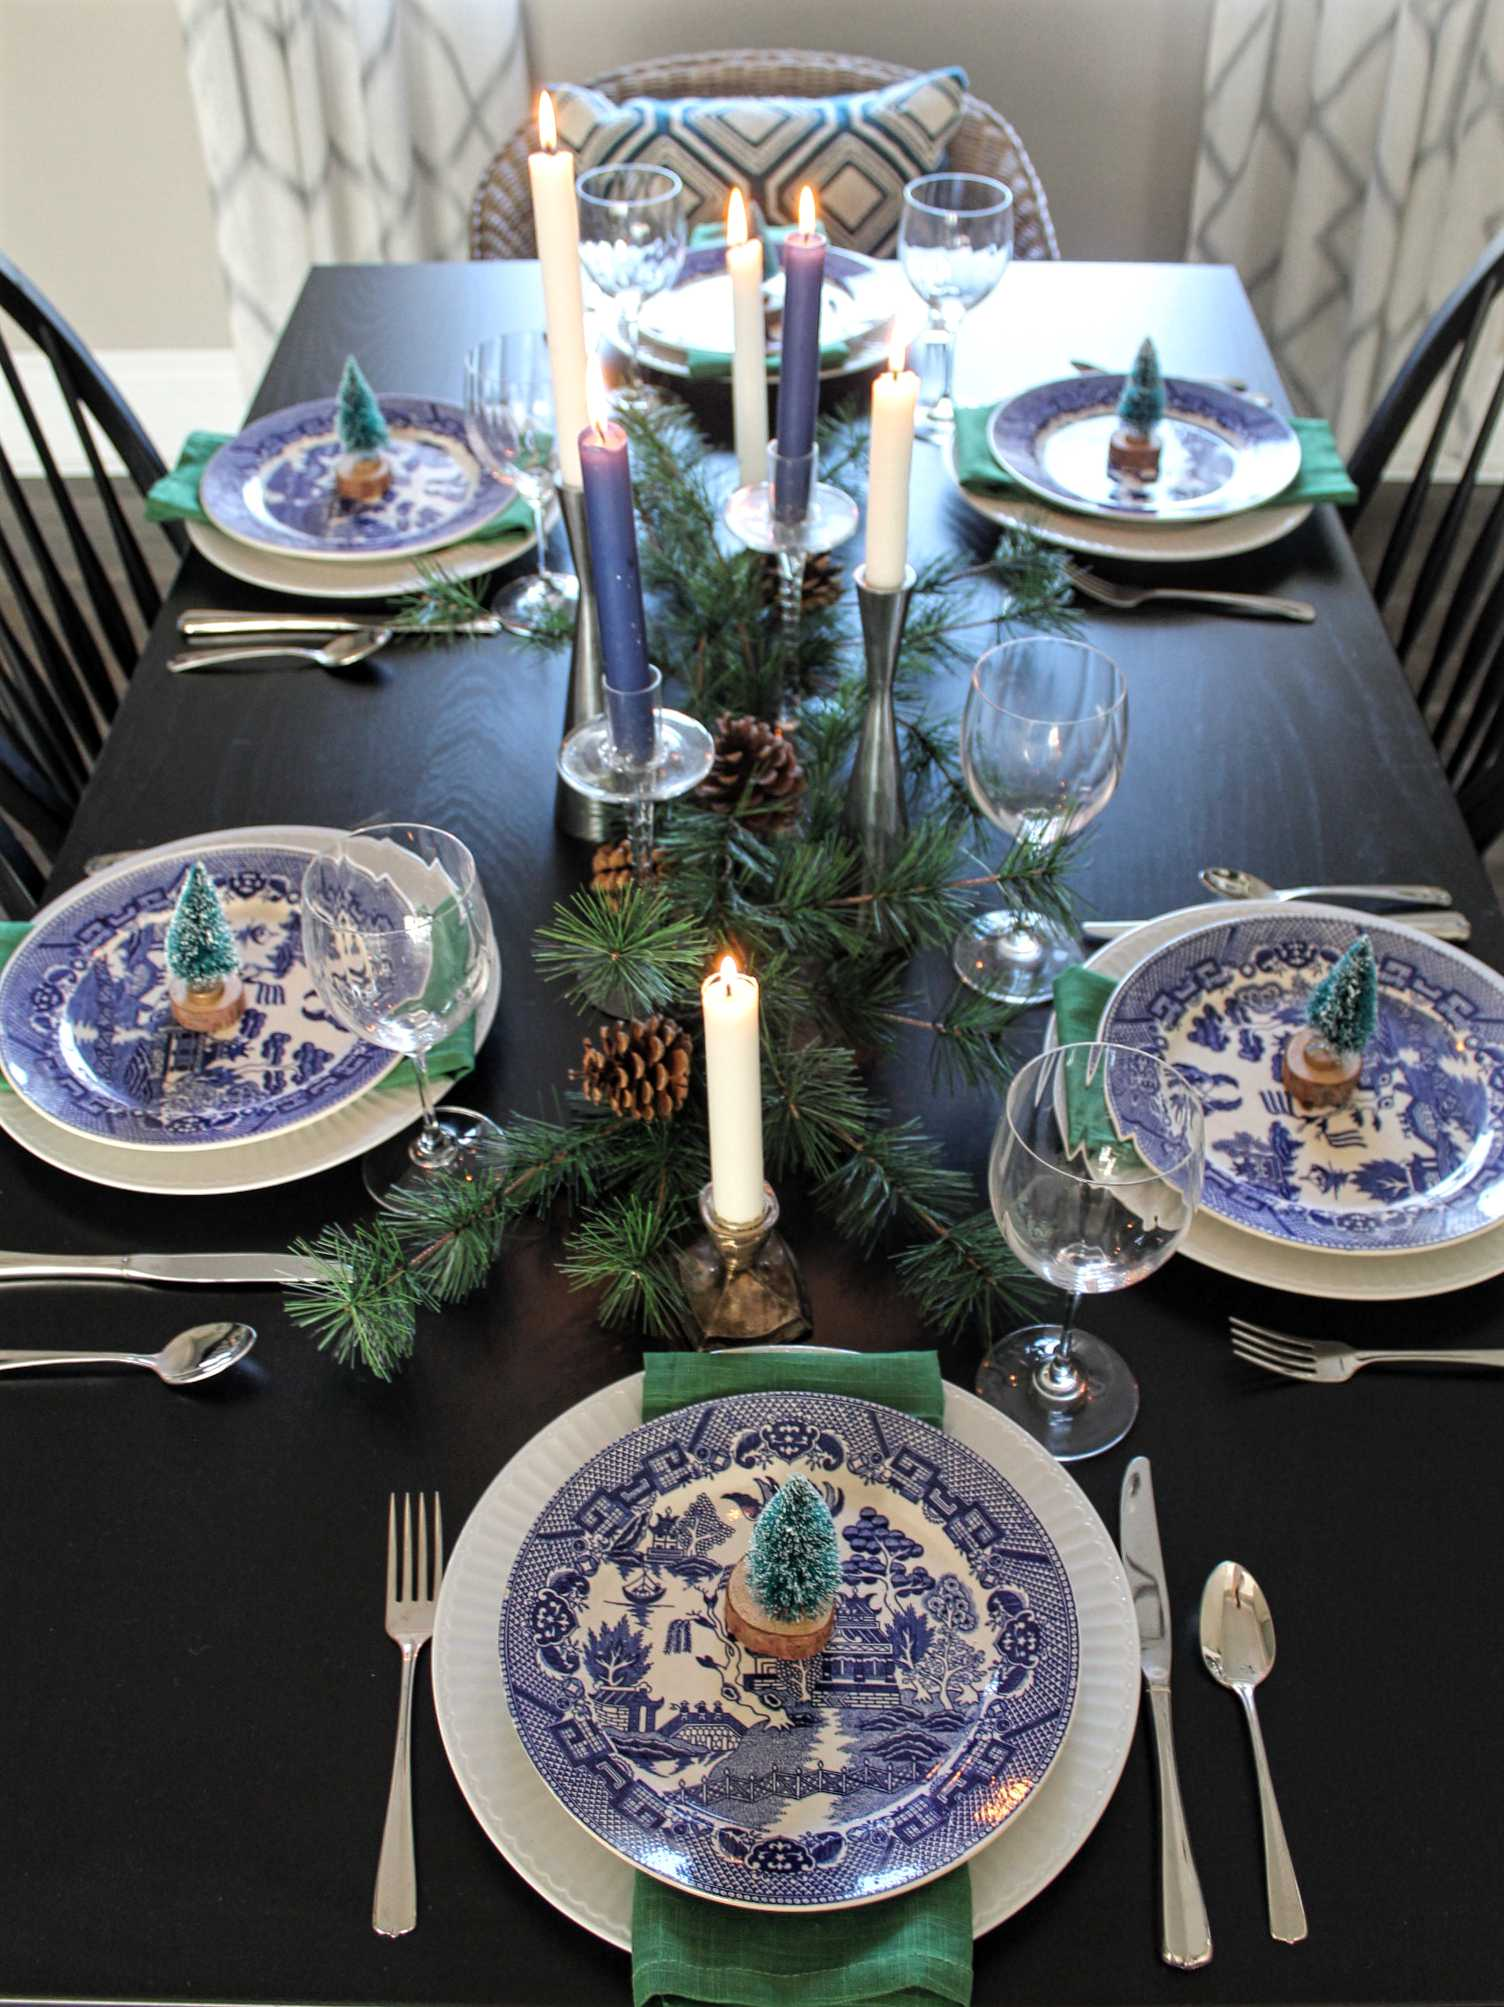 Blue and green table setting with Blue Willow dinnerware- The Hunted & Gathered